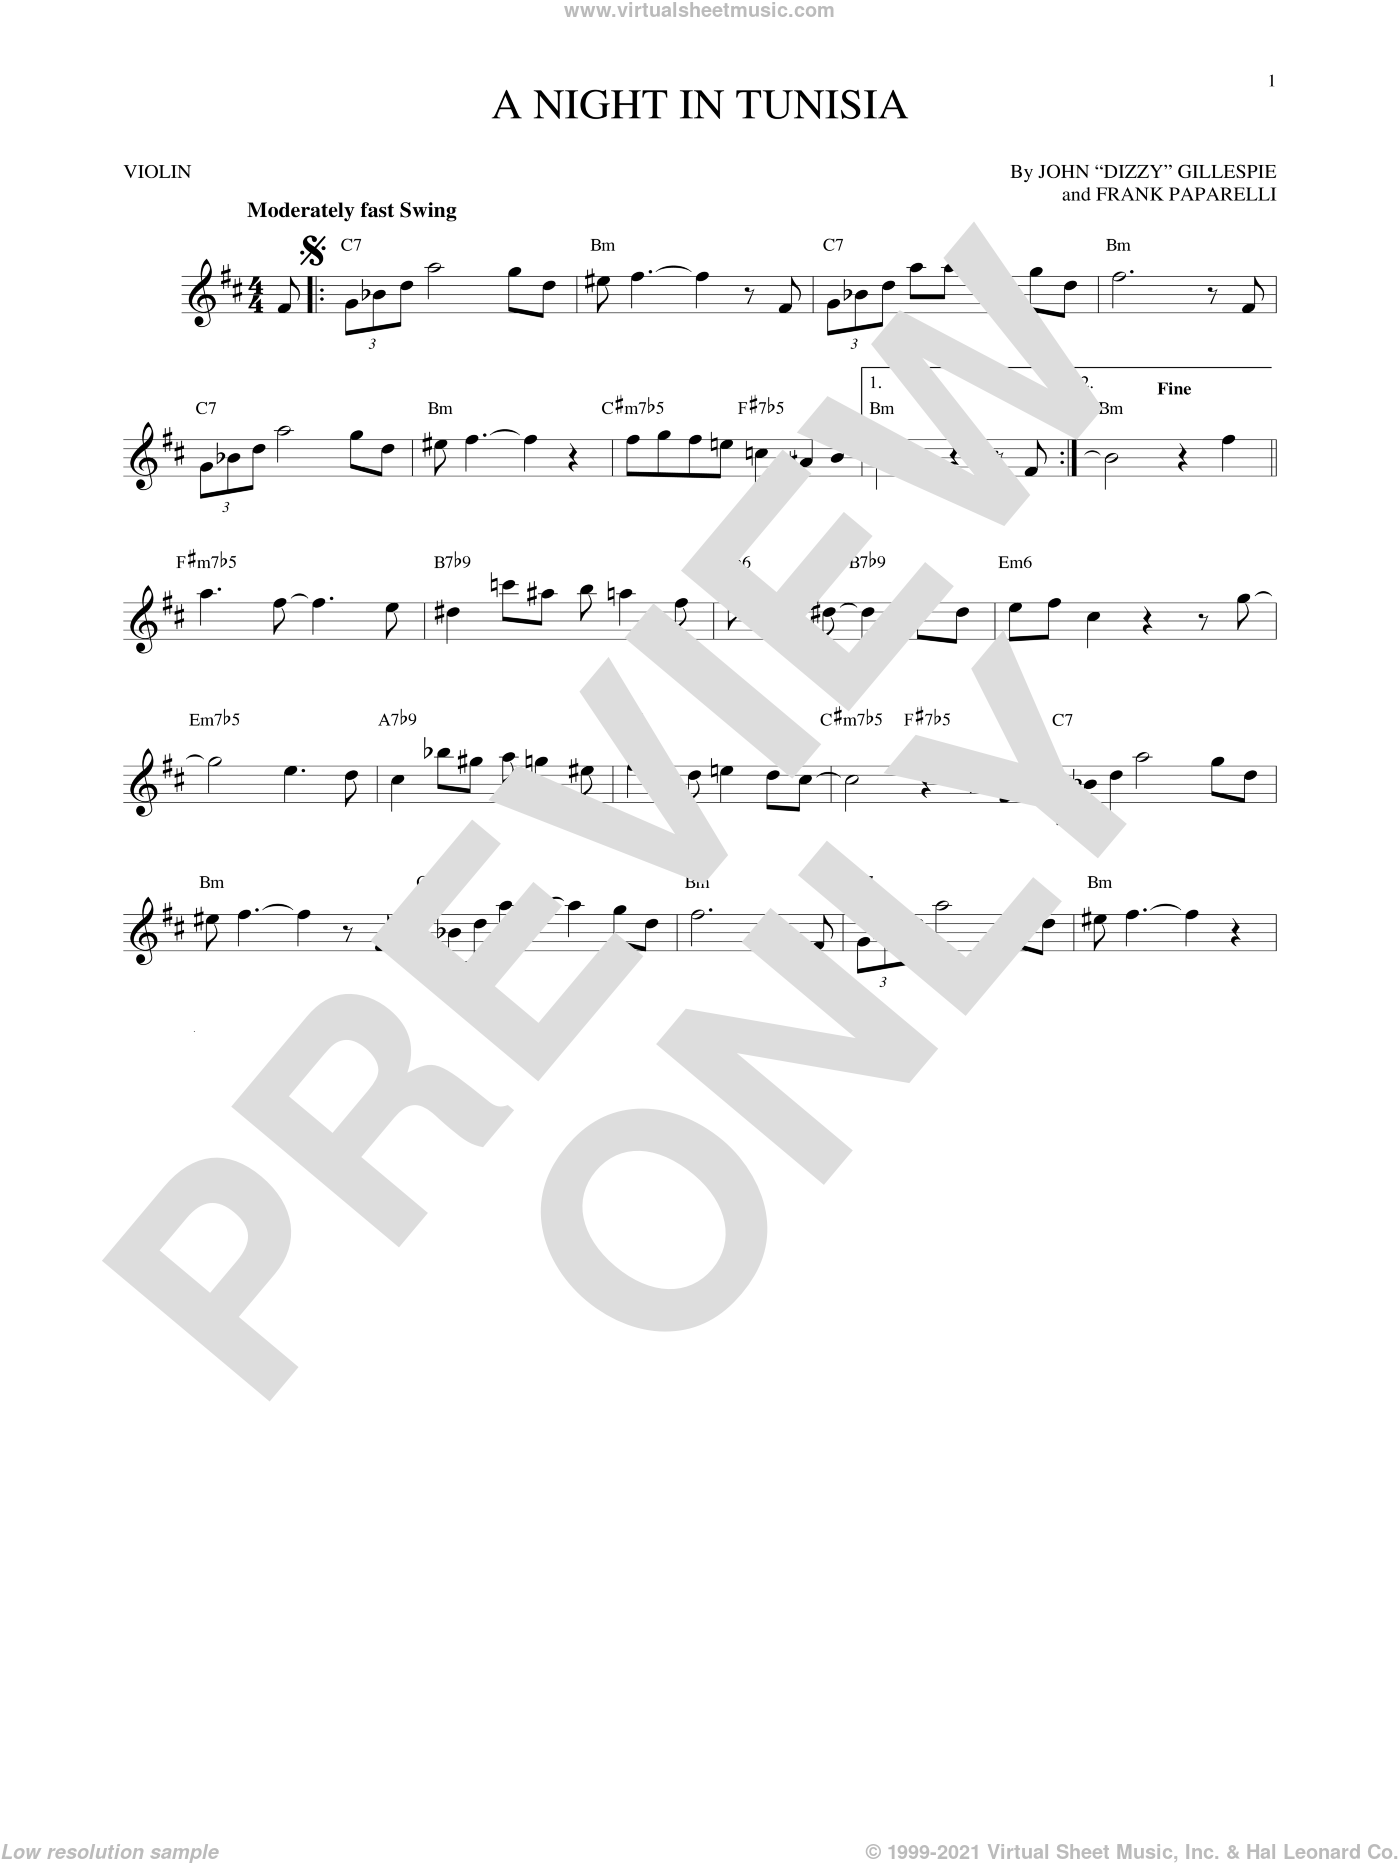 A Night In Tunisia sheet music for violin solo by Dizzy Gillespie and Frank Paparelli, intermediate